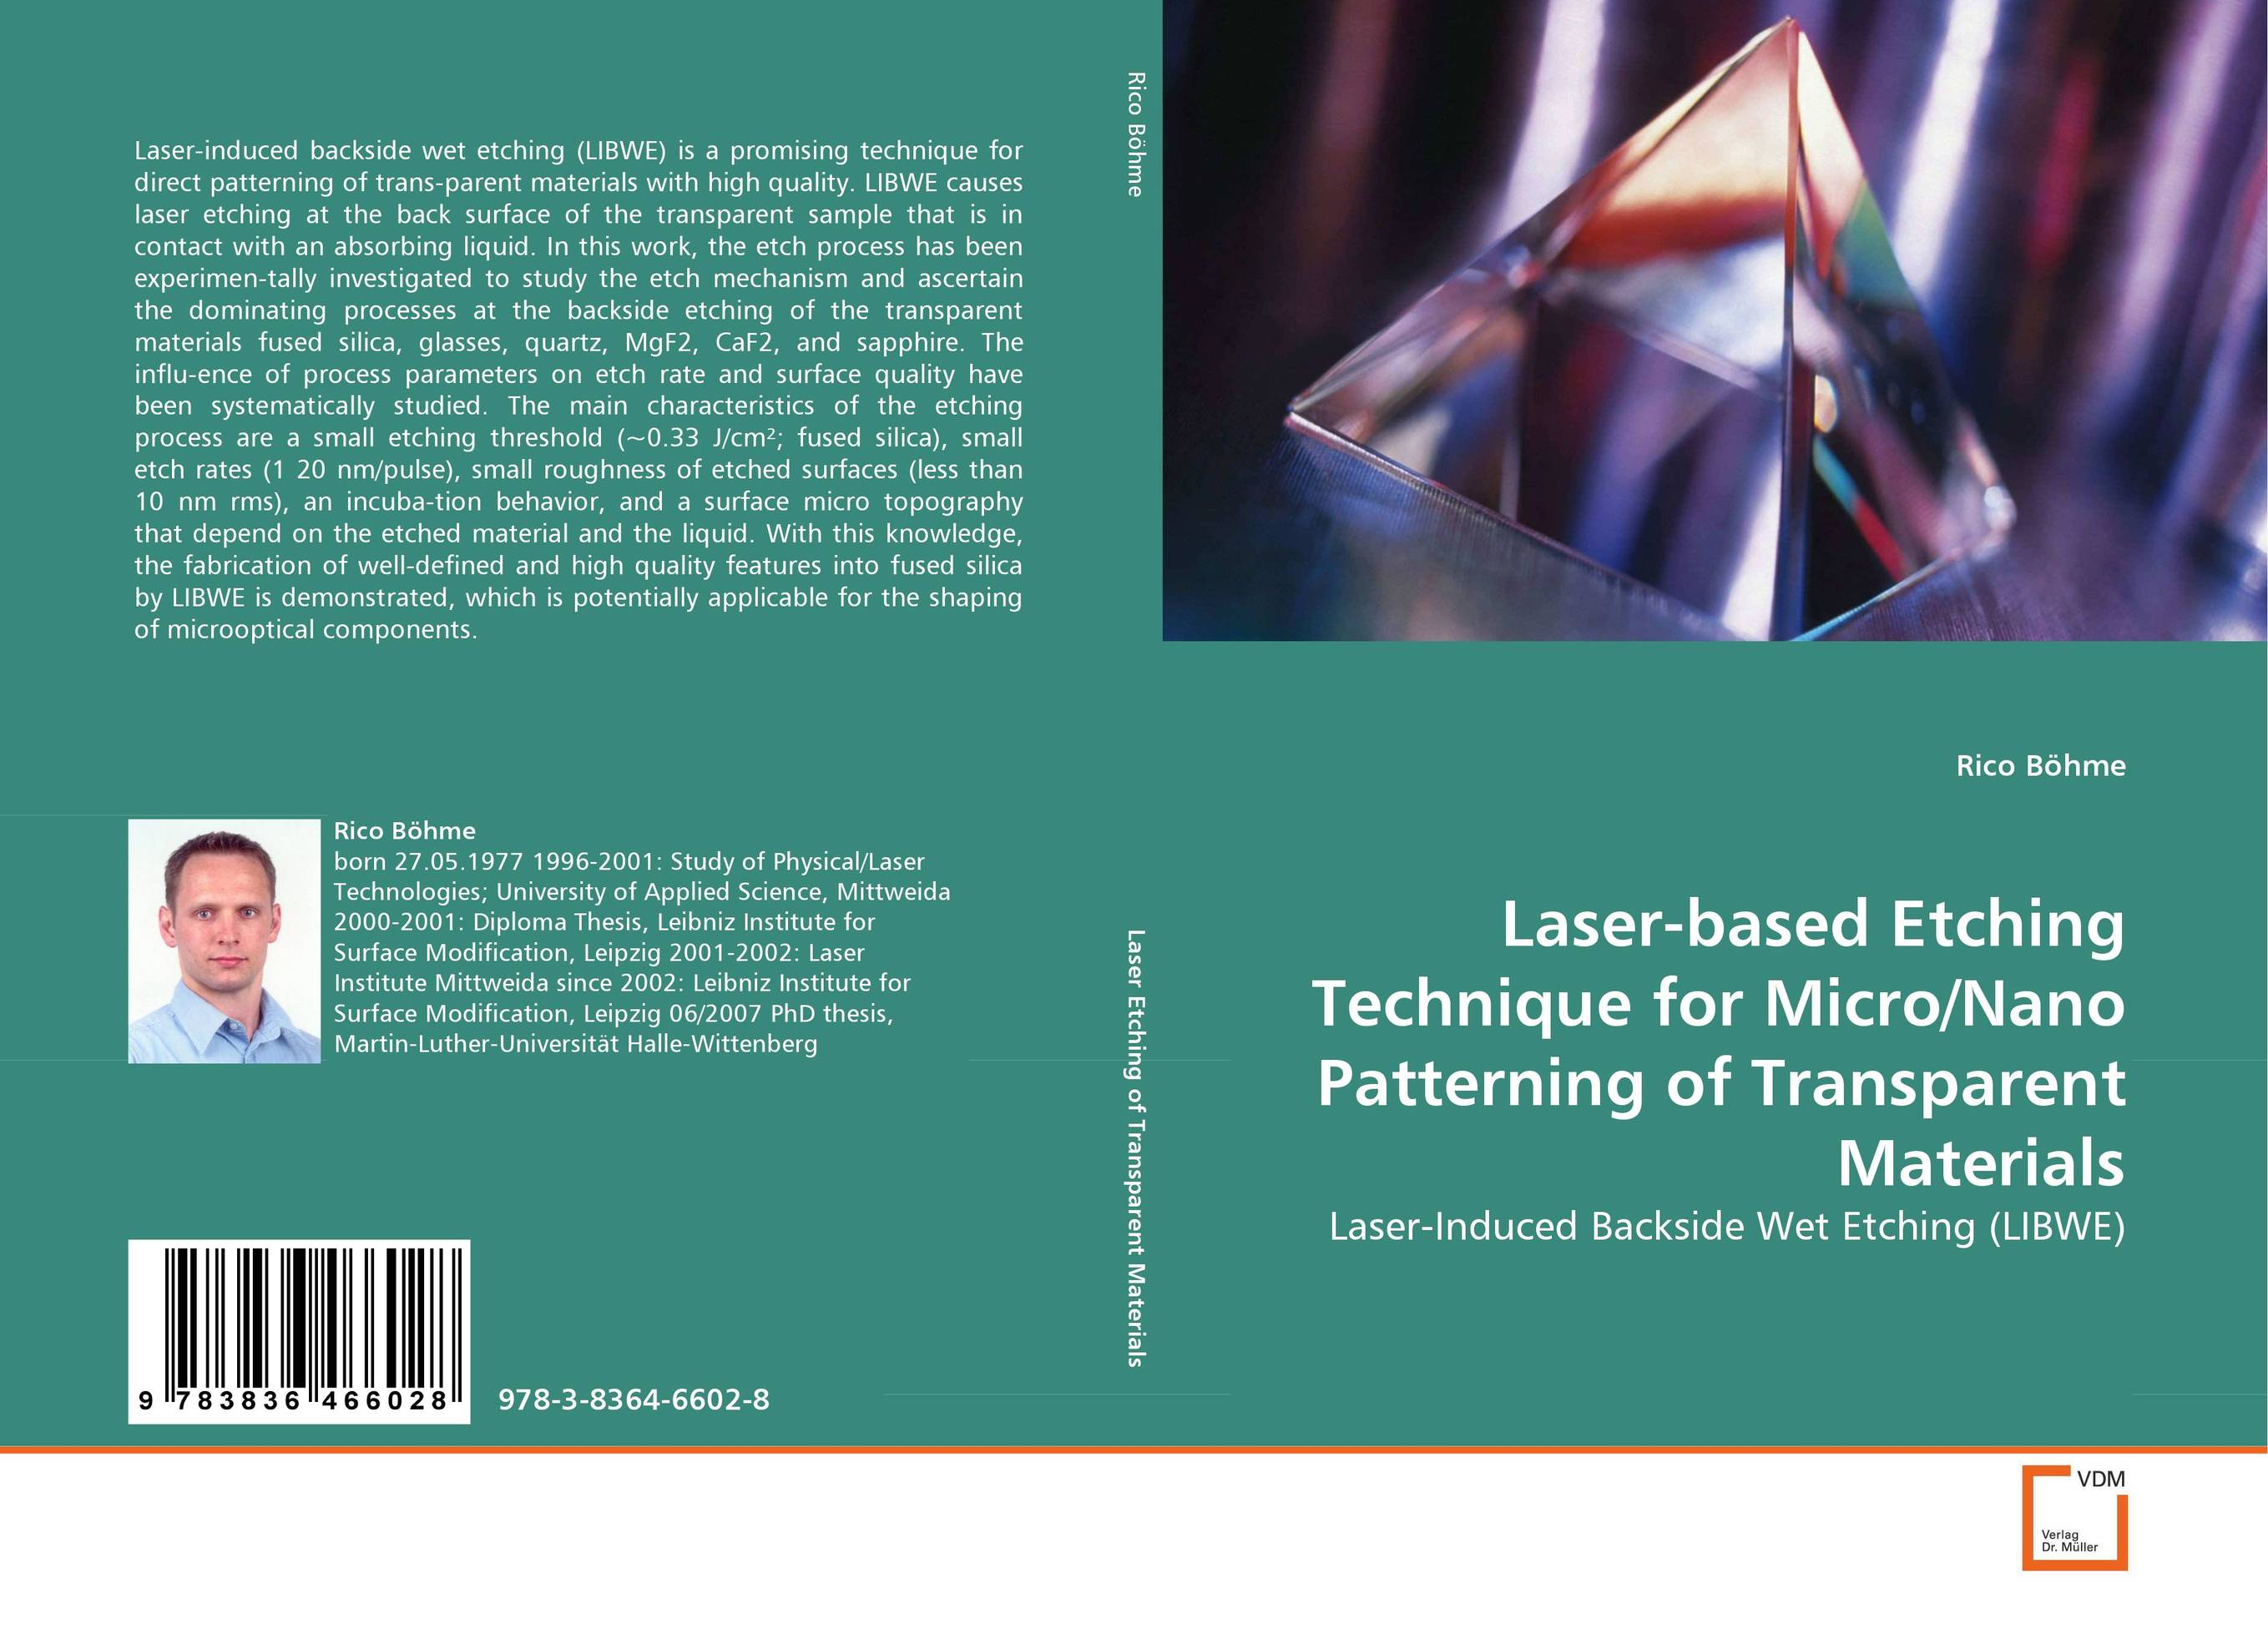 Laser-based Etching Technique for Micro/Nano Patterning of Transparent Materials optical elements and systems in laser technique and metrology